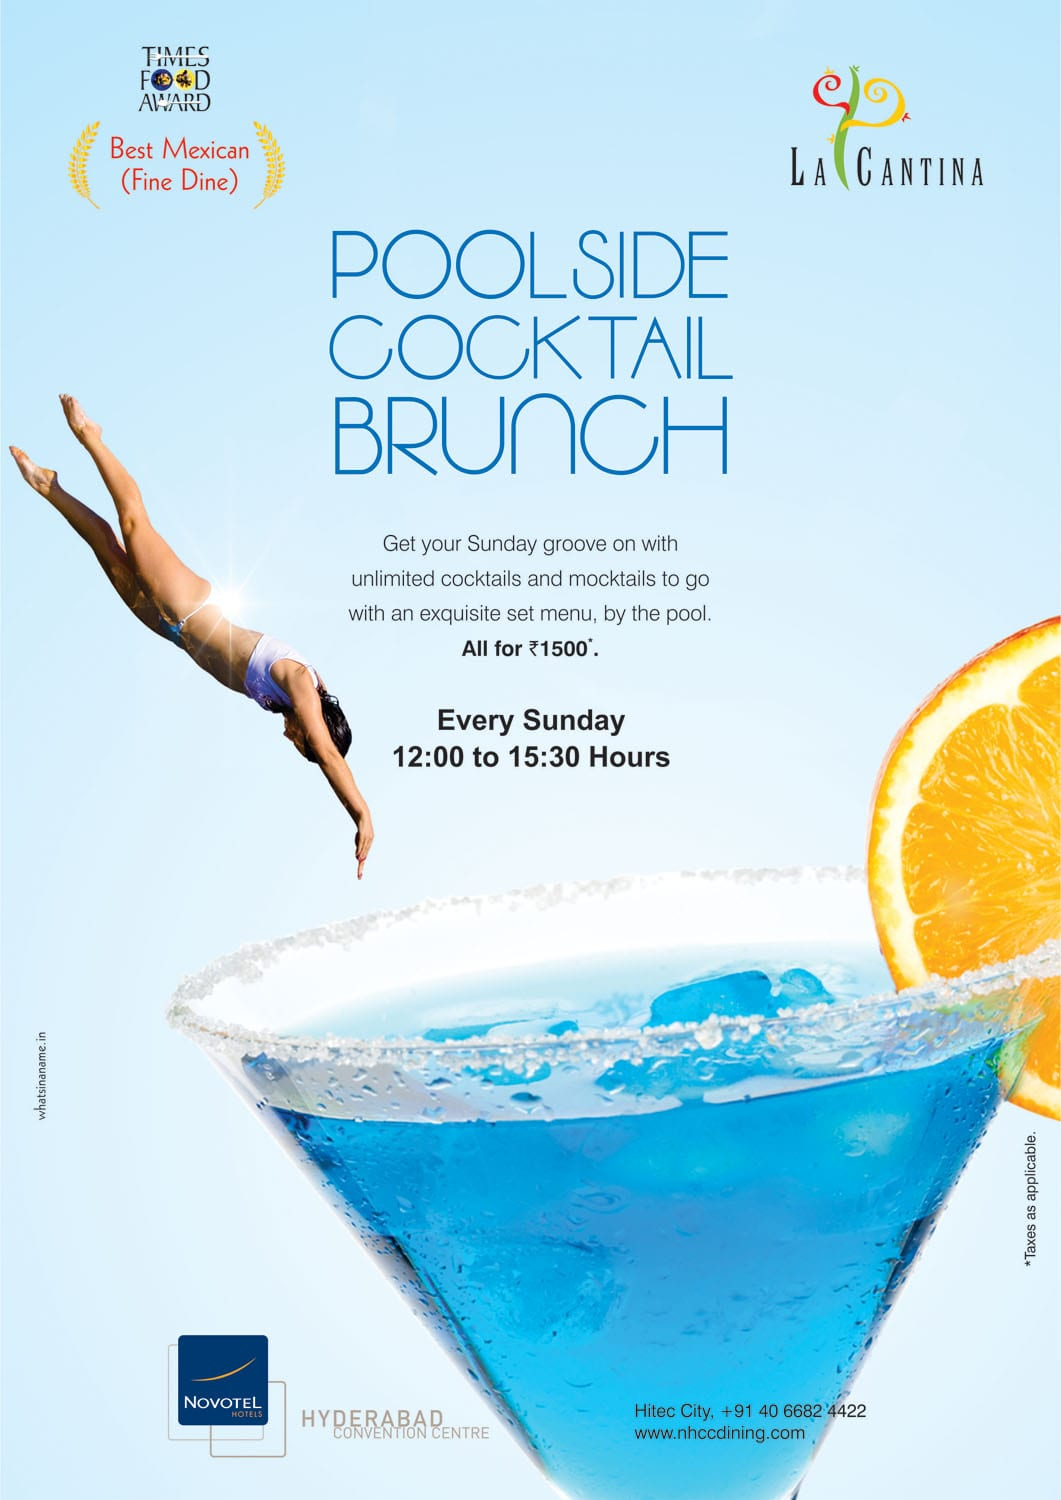 y5x6cgpk1ta-pool-side-brunch-ad,-best-advertising-agency,-what's-in-a-name,-seo,-sem,-smm